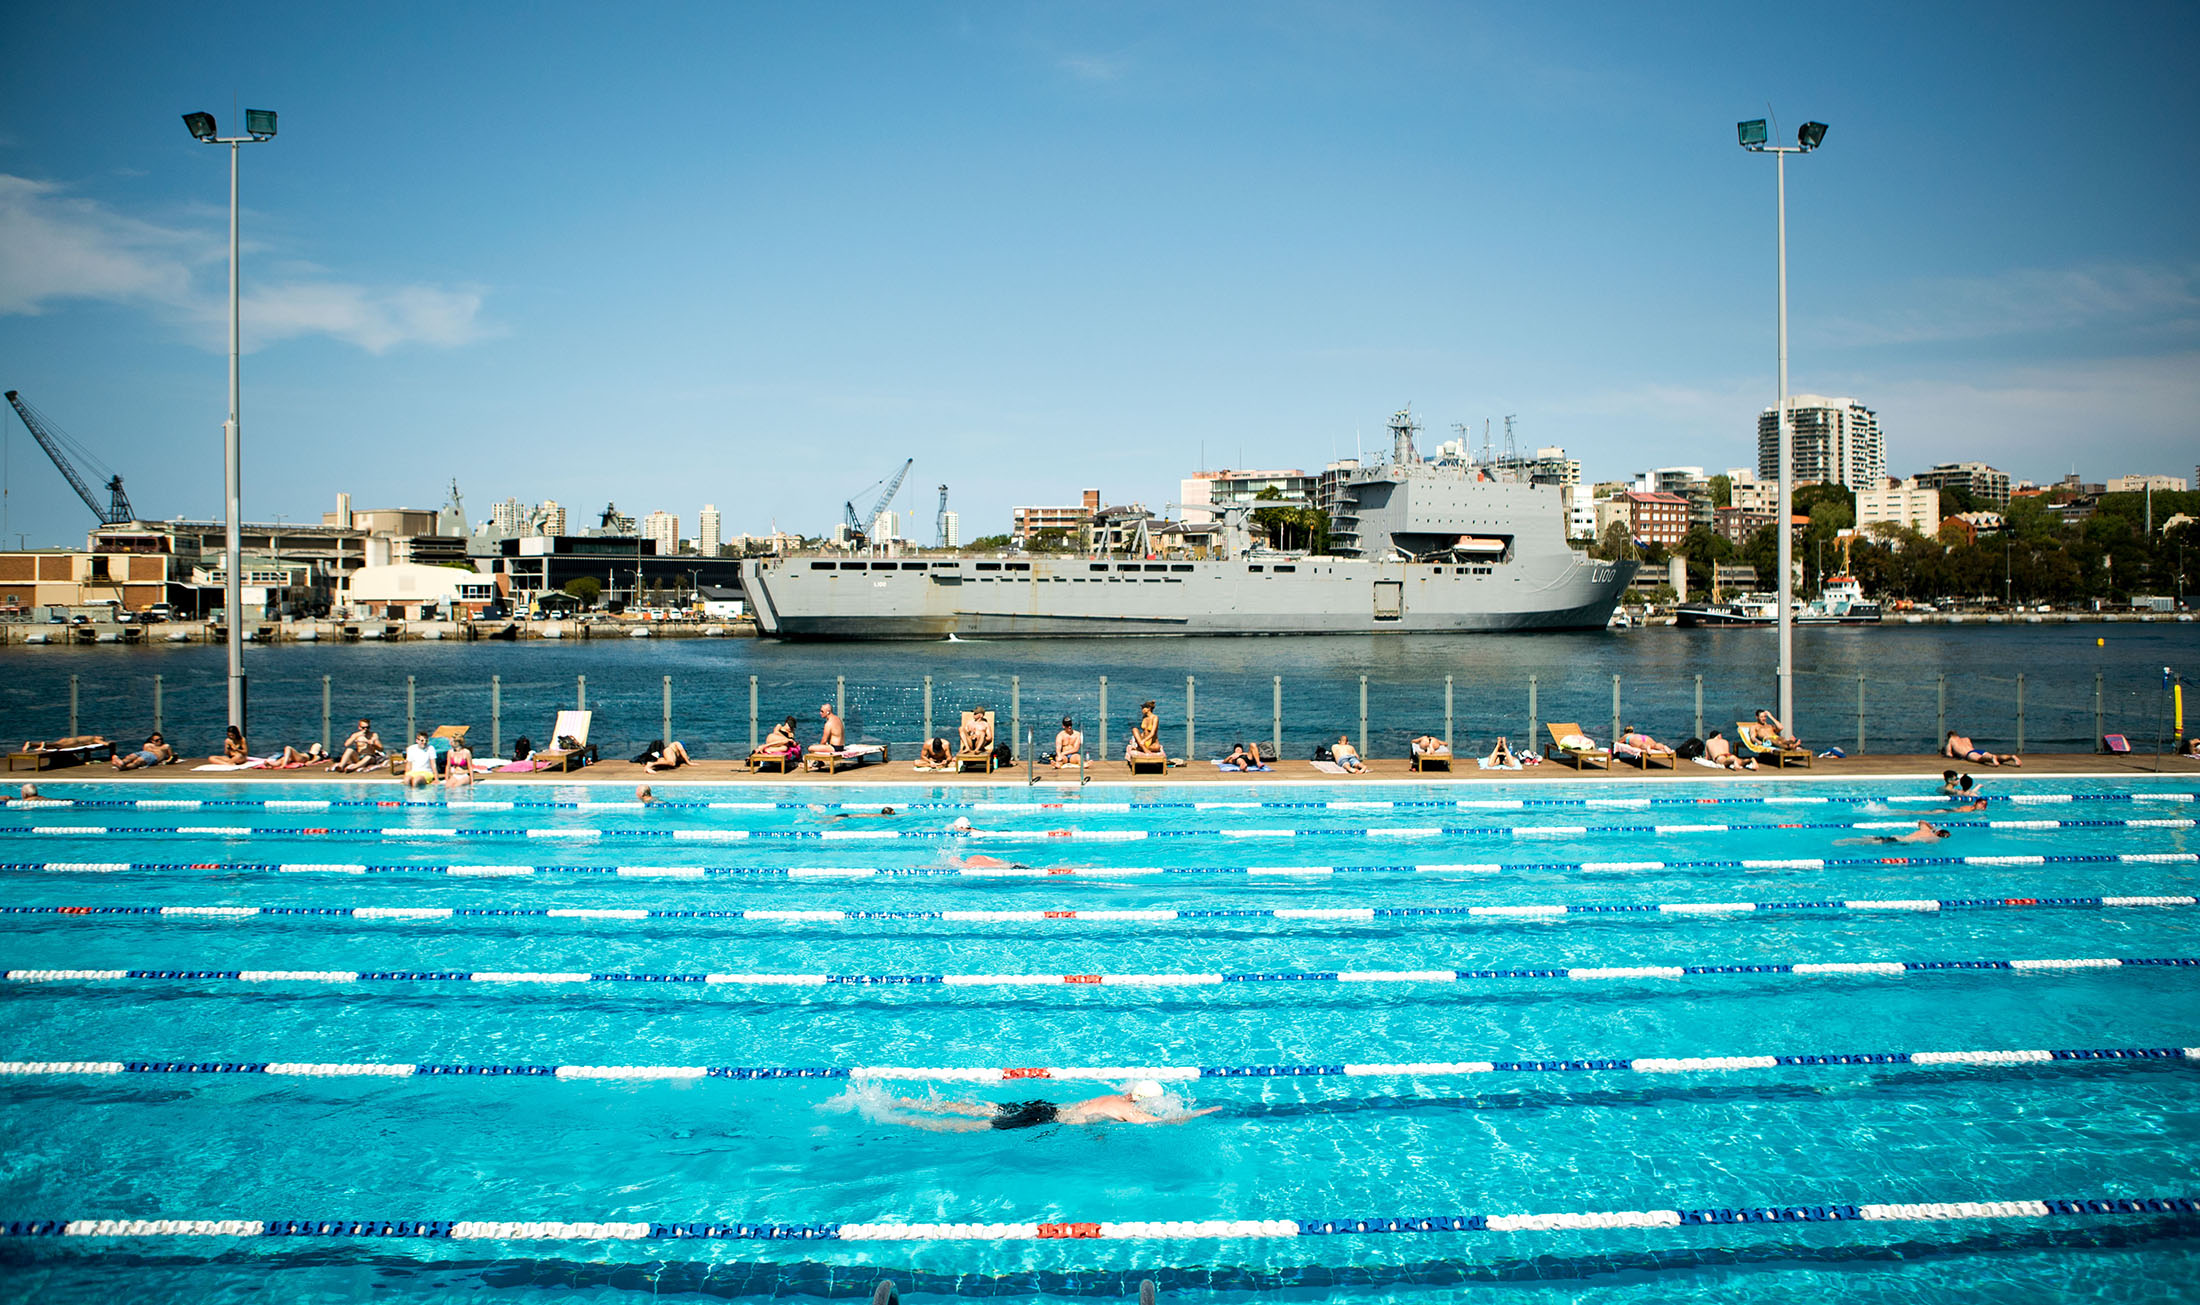 """Andrew Boy Charlton Pool (ABC) is our go-to place for an inner-city swim on the harbour - a true Sydney experience."" Image by Places We Swim"